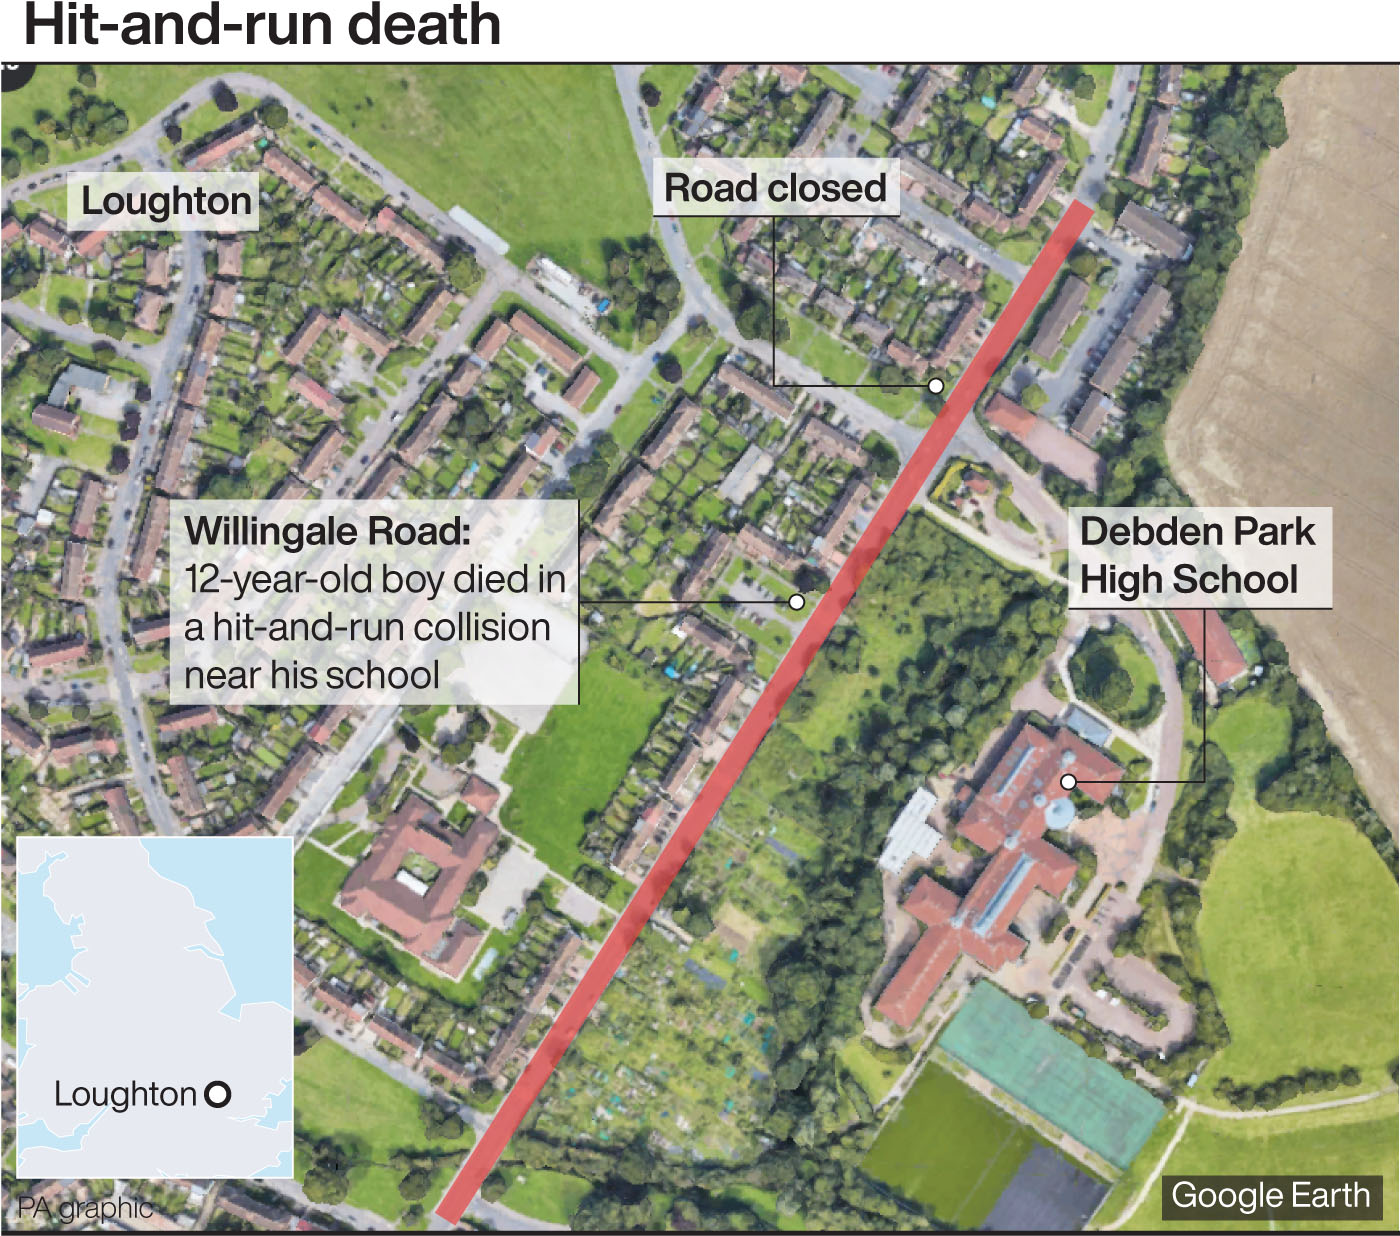 Loughton school crash: Man held over collision which killed boy, 12